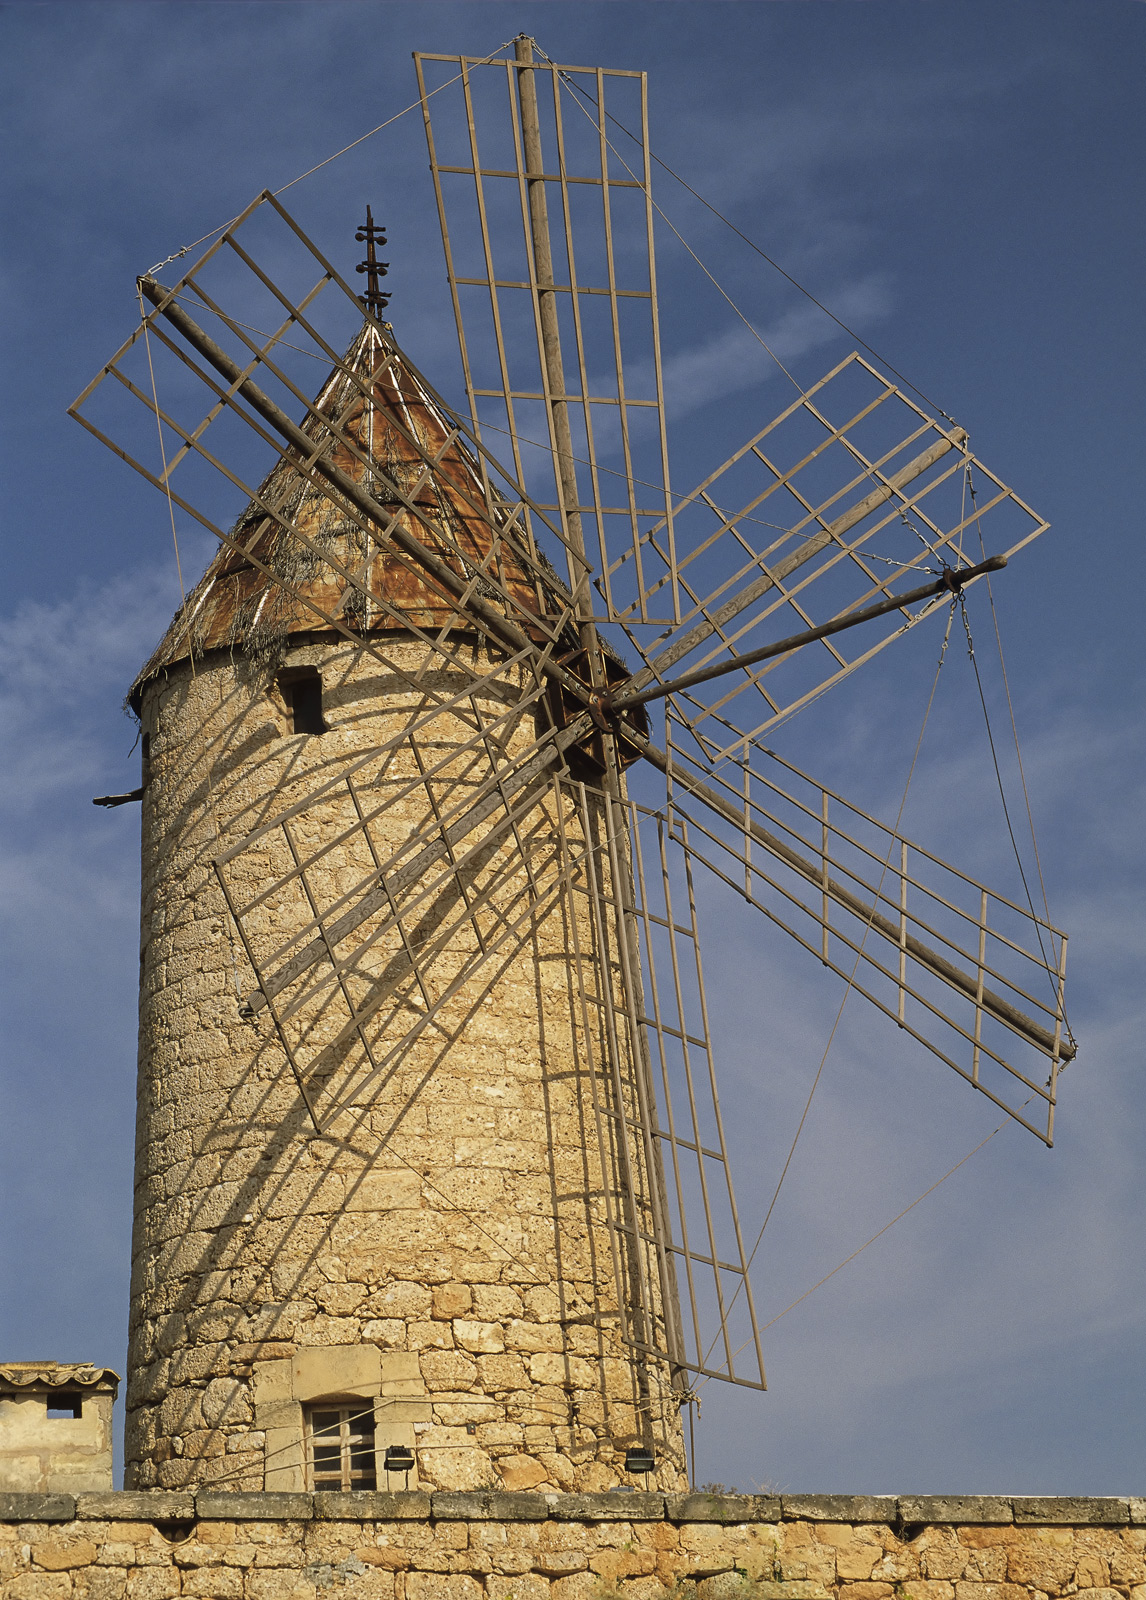 Antique Turbine, Casares, Andalucia, Spain, honey, sandstone warm, evening, light, skeletal, sails, picturesque, cloud, , photo